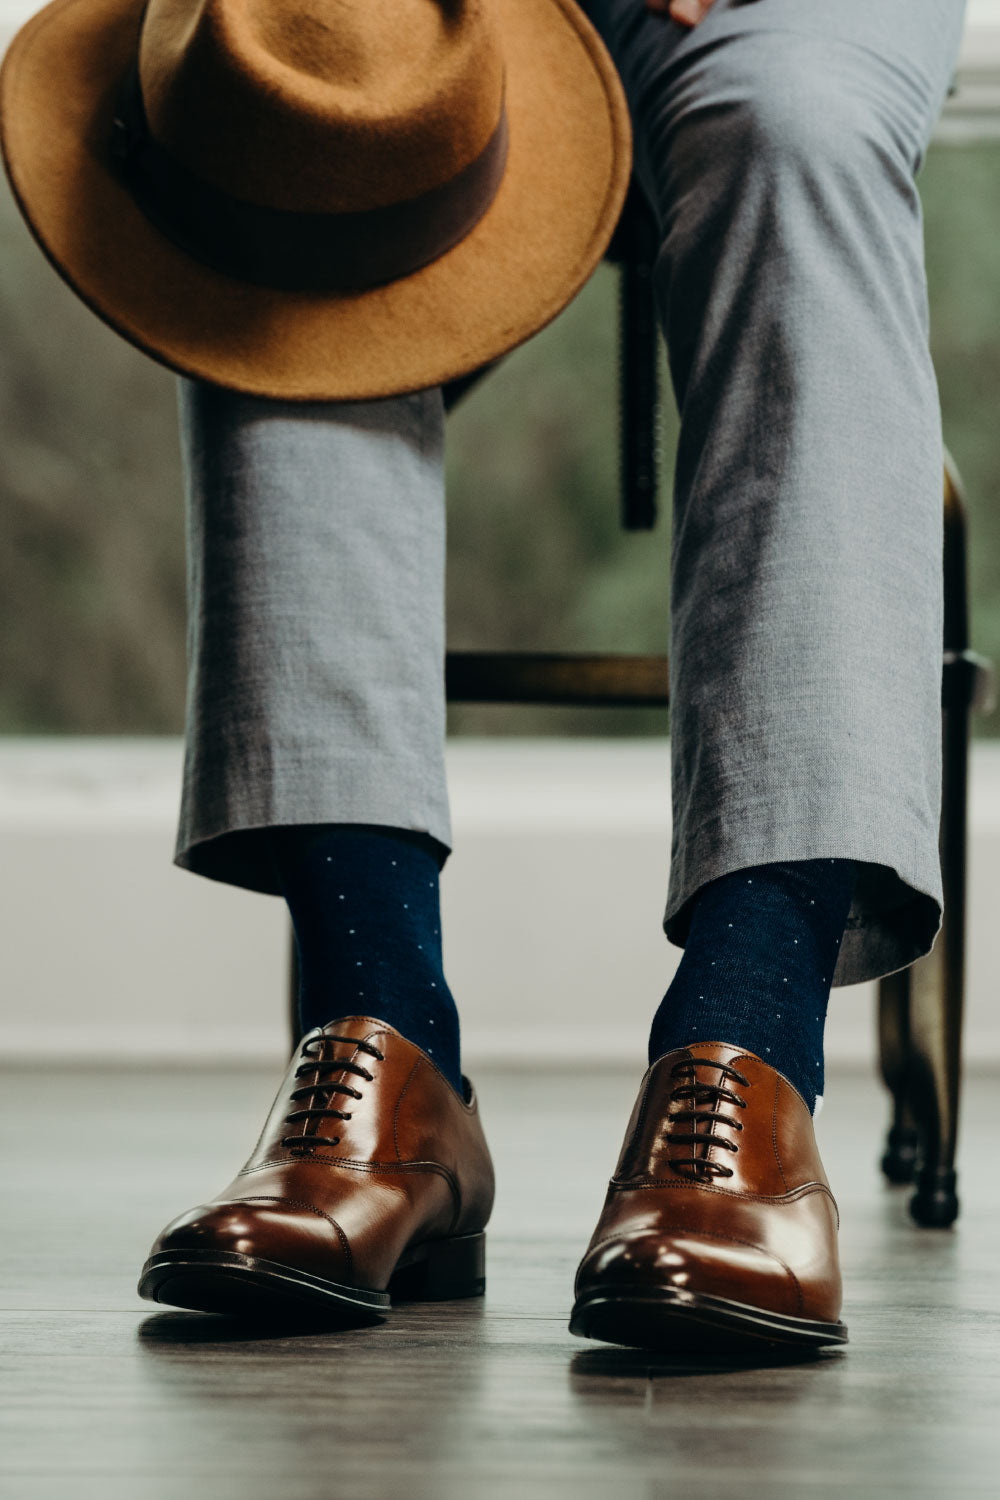 THE BEST SOCKS FOR YOUR WARDROBE | WHY MATERIALS MATTER